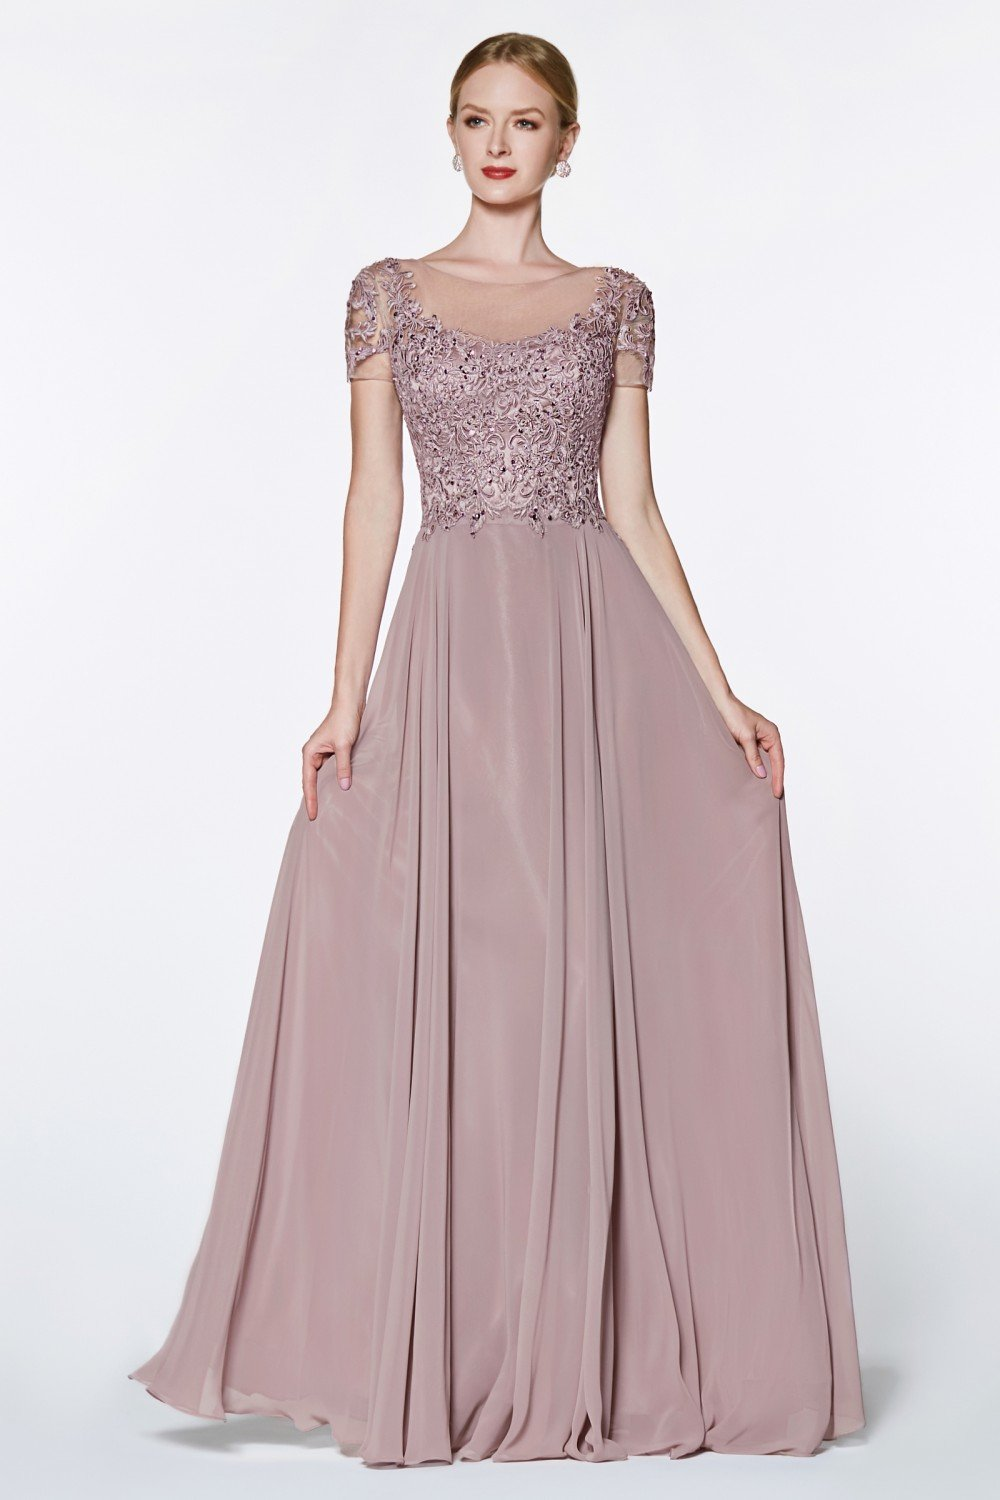 Mauve A-line chiffon gown with lace bodice and flutter sleeve.